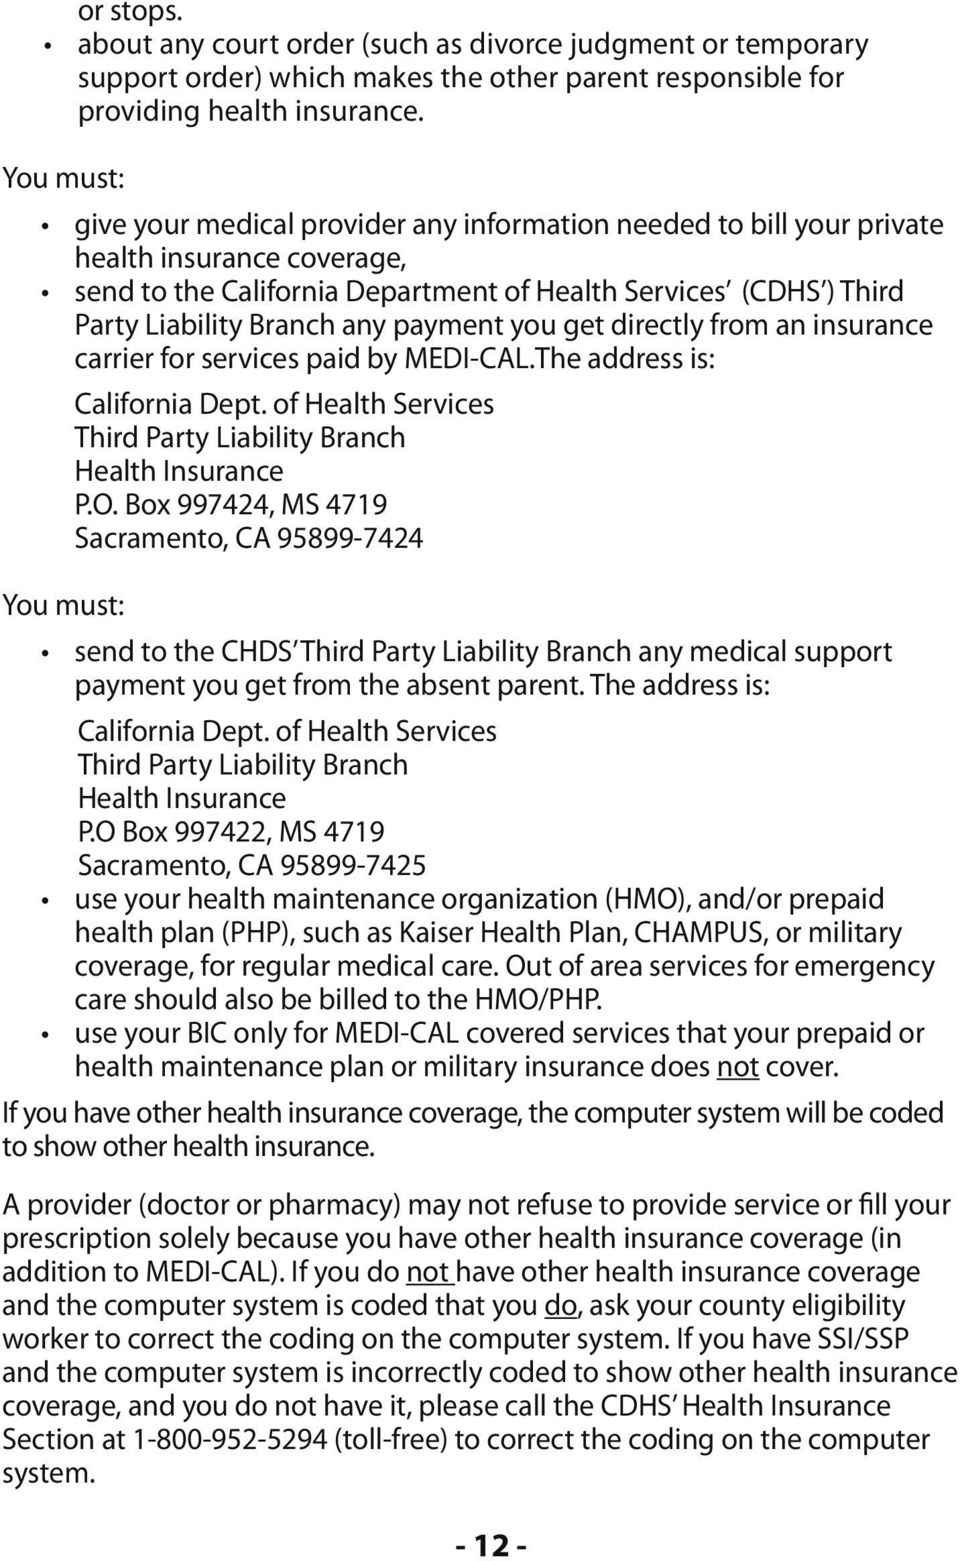 any payment you get directly from an insurance carrier for services paid by MEDI-CAL.The address is: You must: California Dept. of Health Services Third Party Liability Branch Health Insurance P.O.